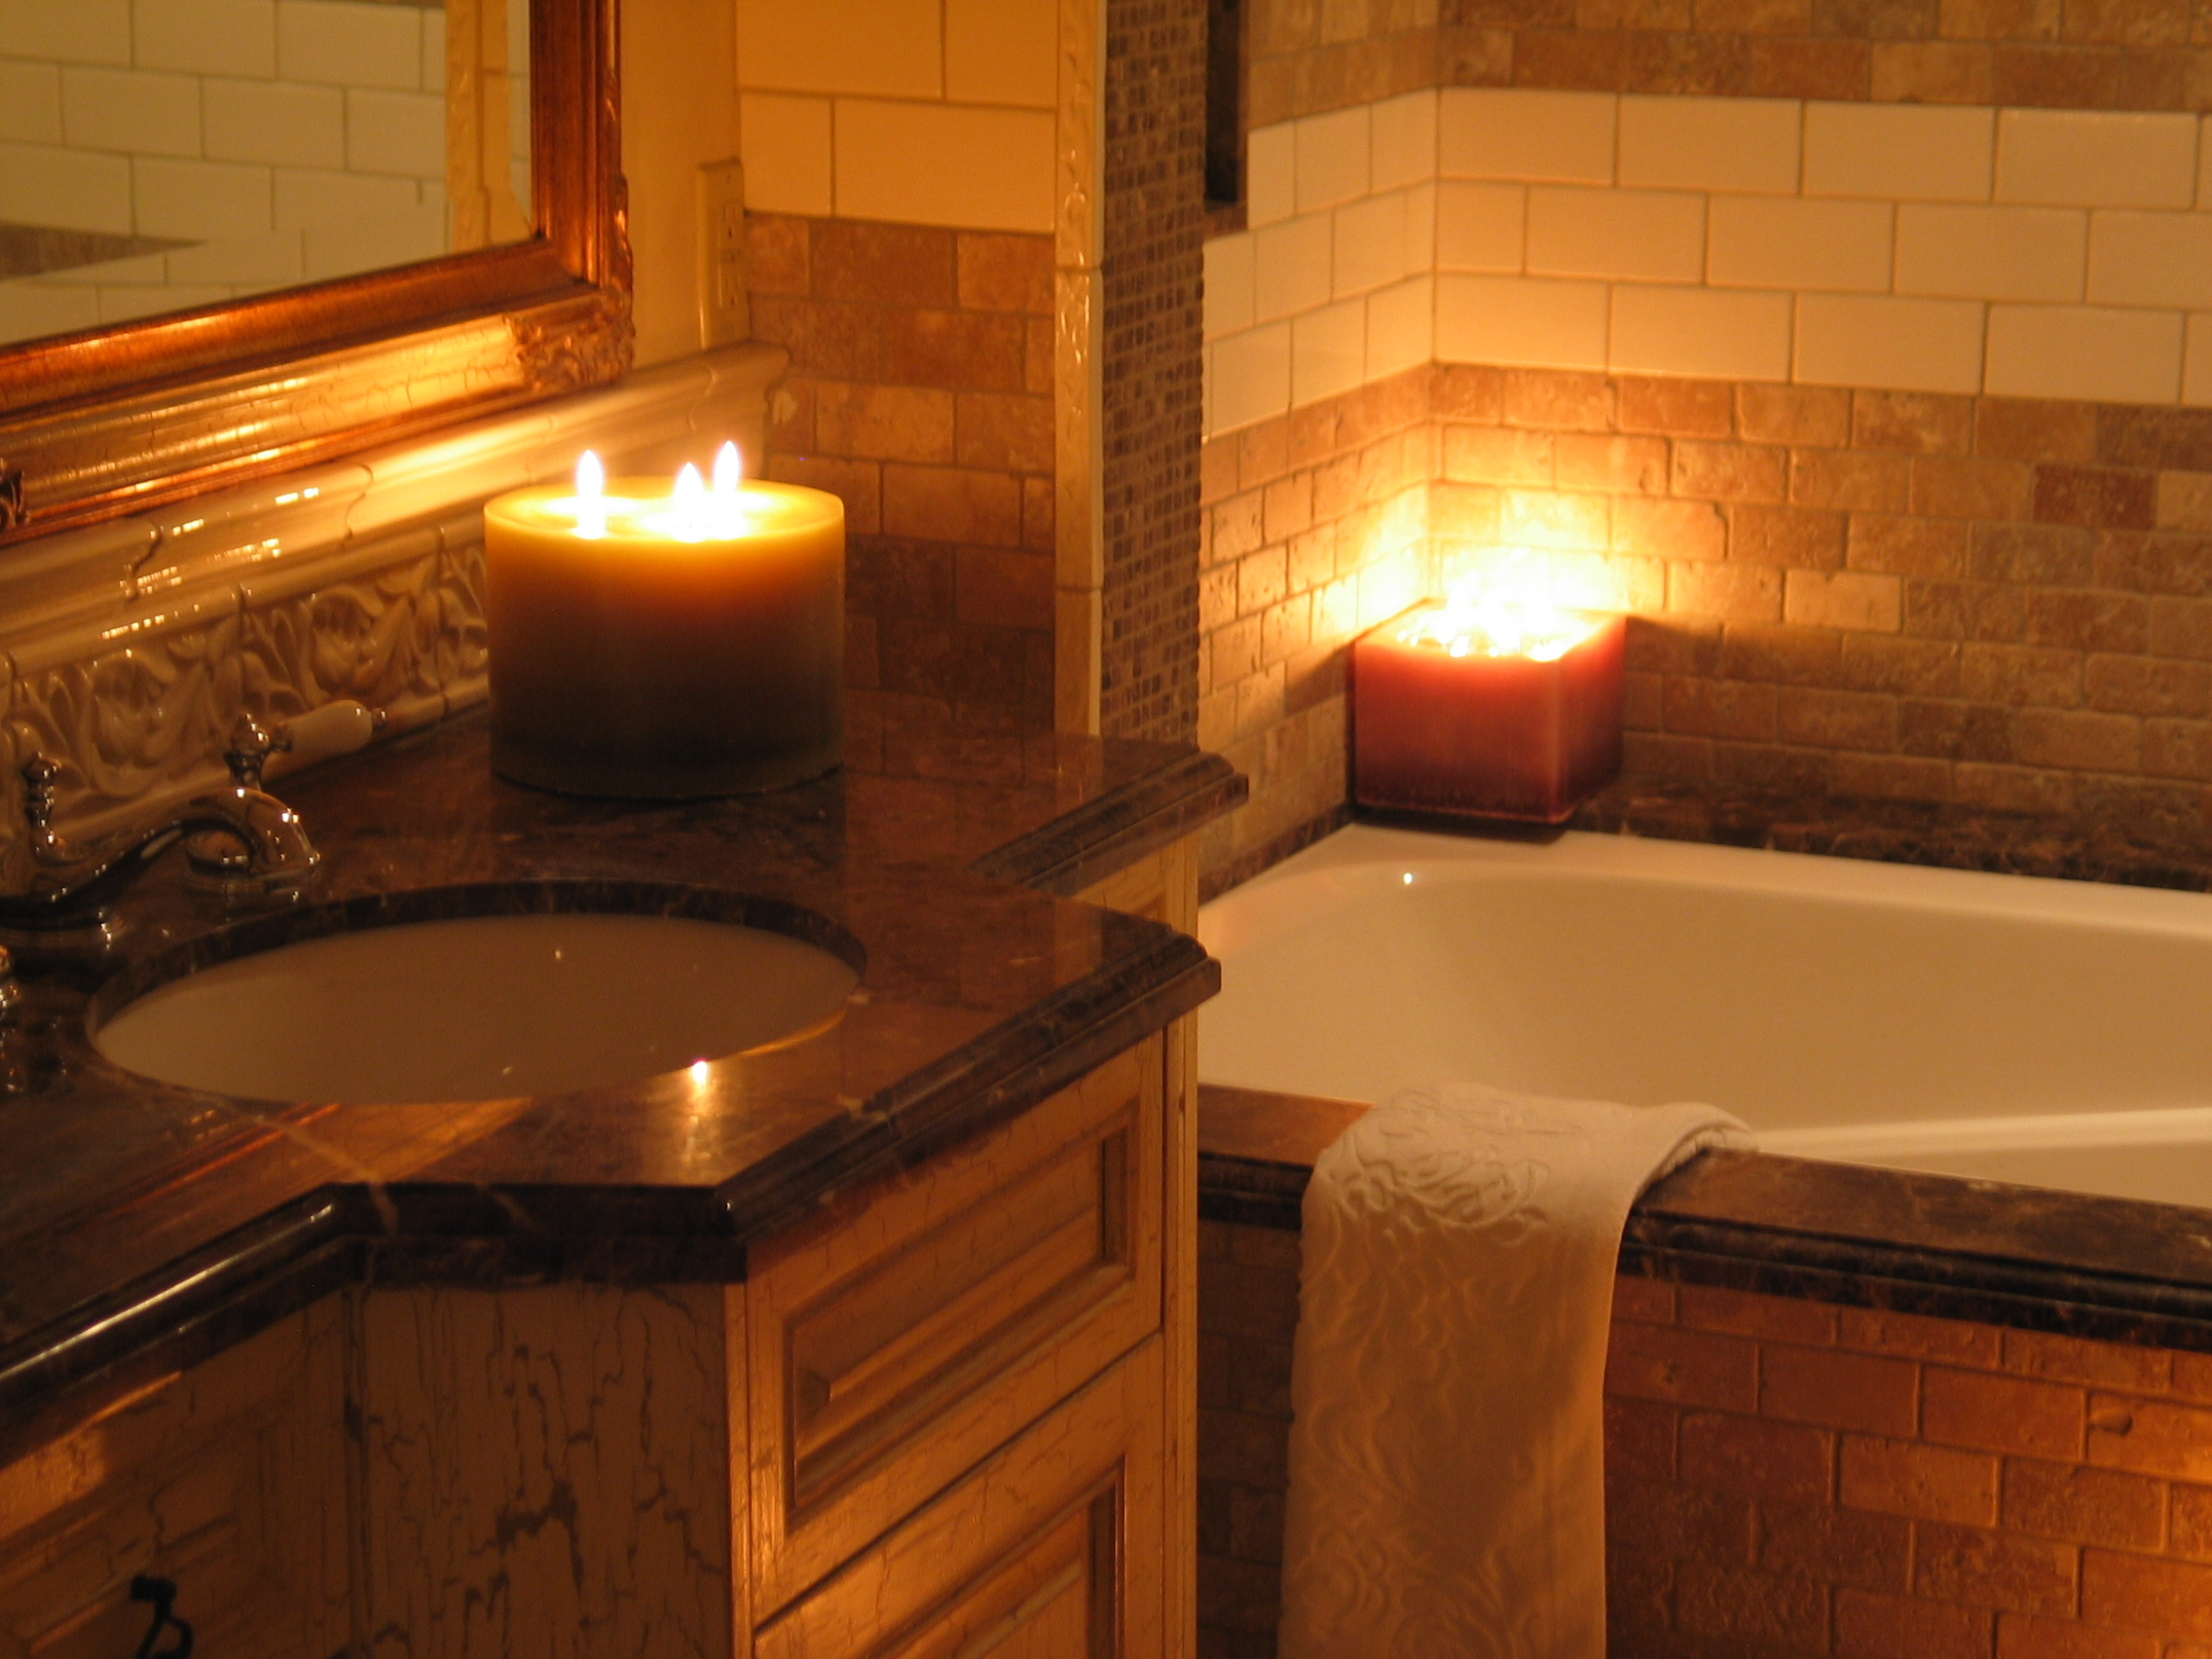 6 Ways To Turn Your Bathroom Into A Personal Spa | Brolsma